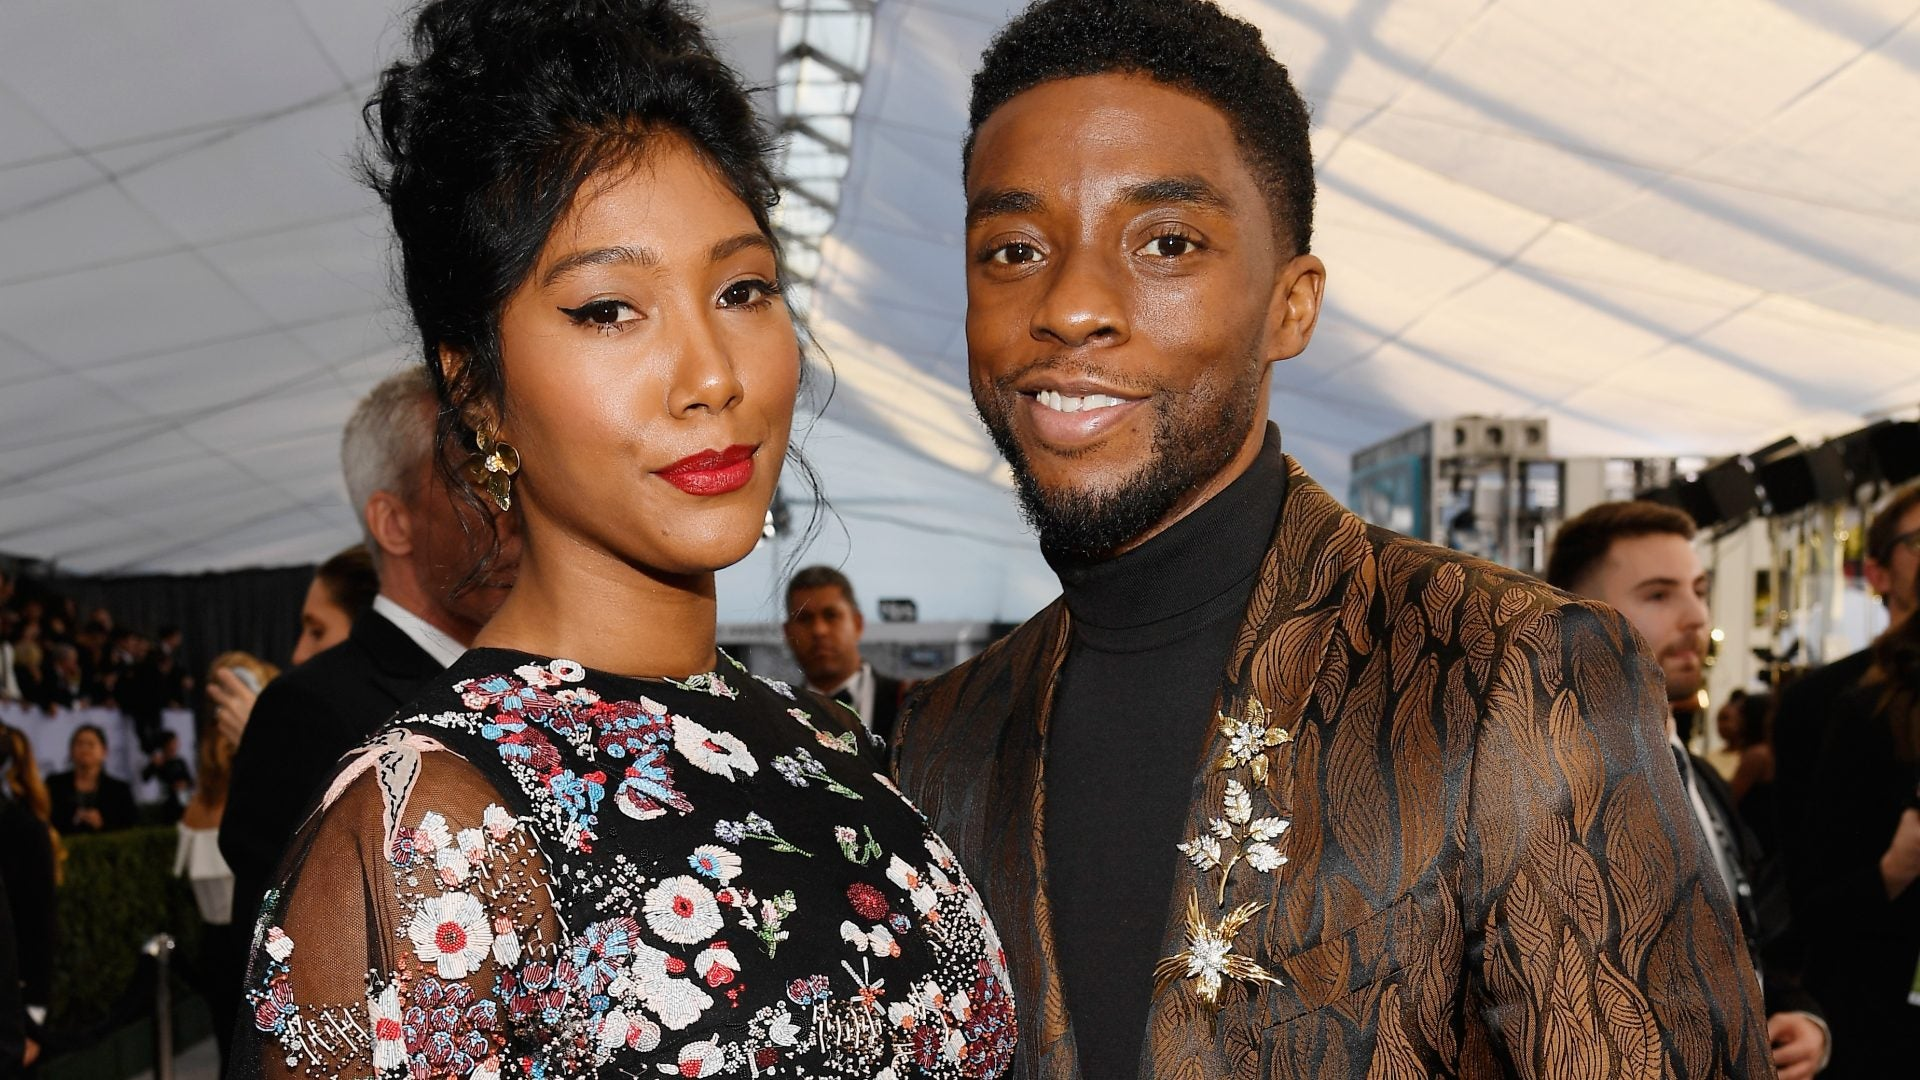 Chadwick Boseman And Wife Taylor Simone Ledward's Love Story In Photos